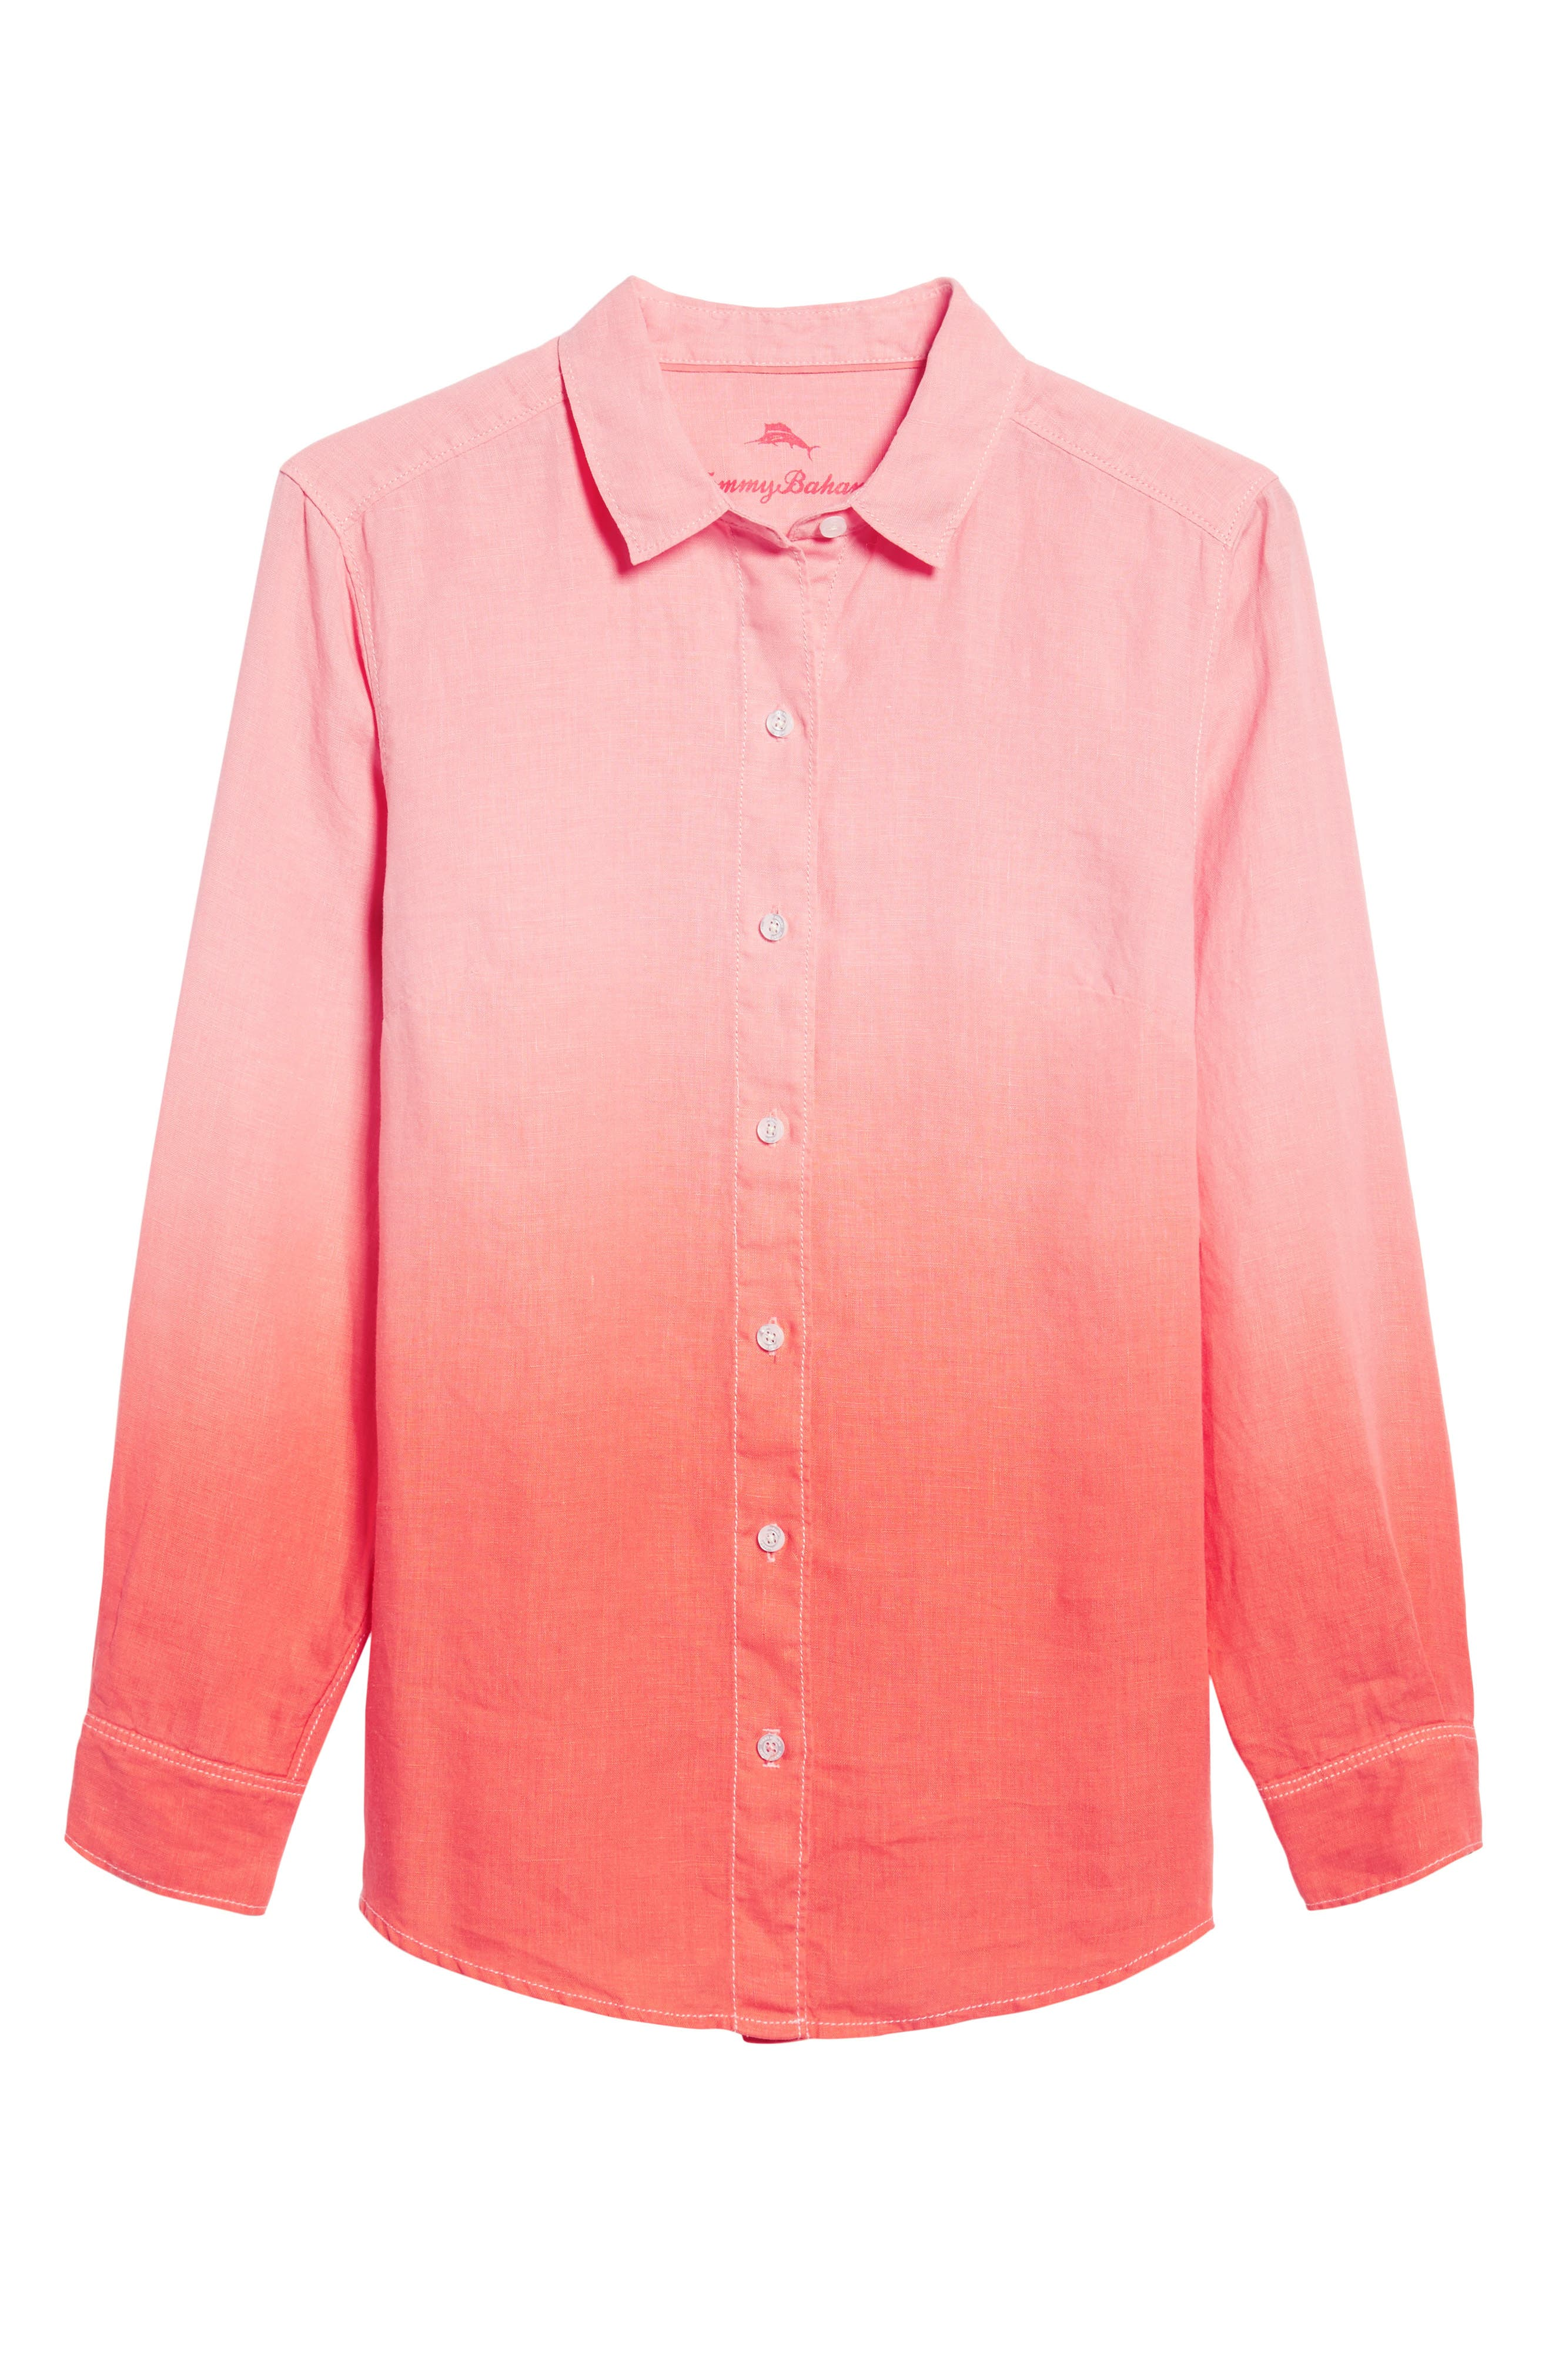 Two Palms Dip Dye Top,                             Alternate thumbnail 6, color,                             CABANA PINK/ BURNT CORAL